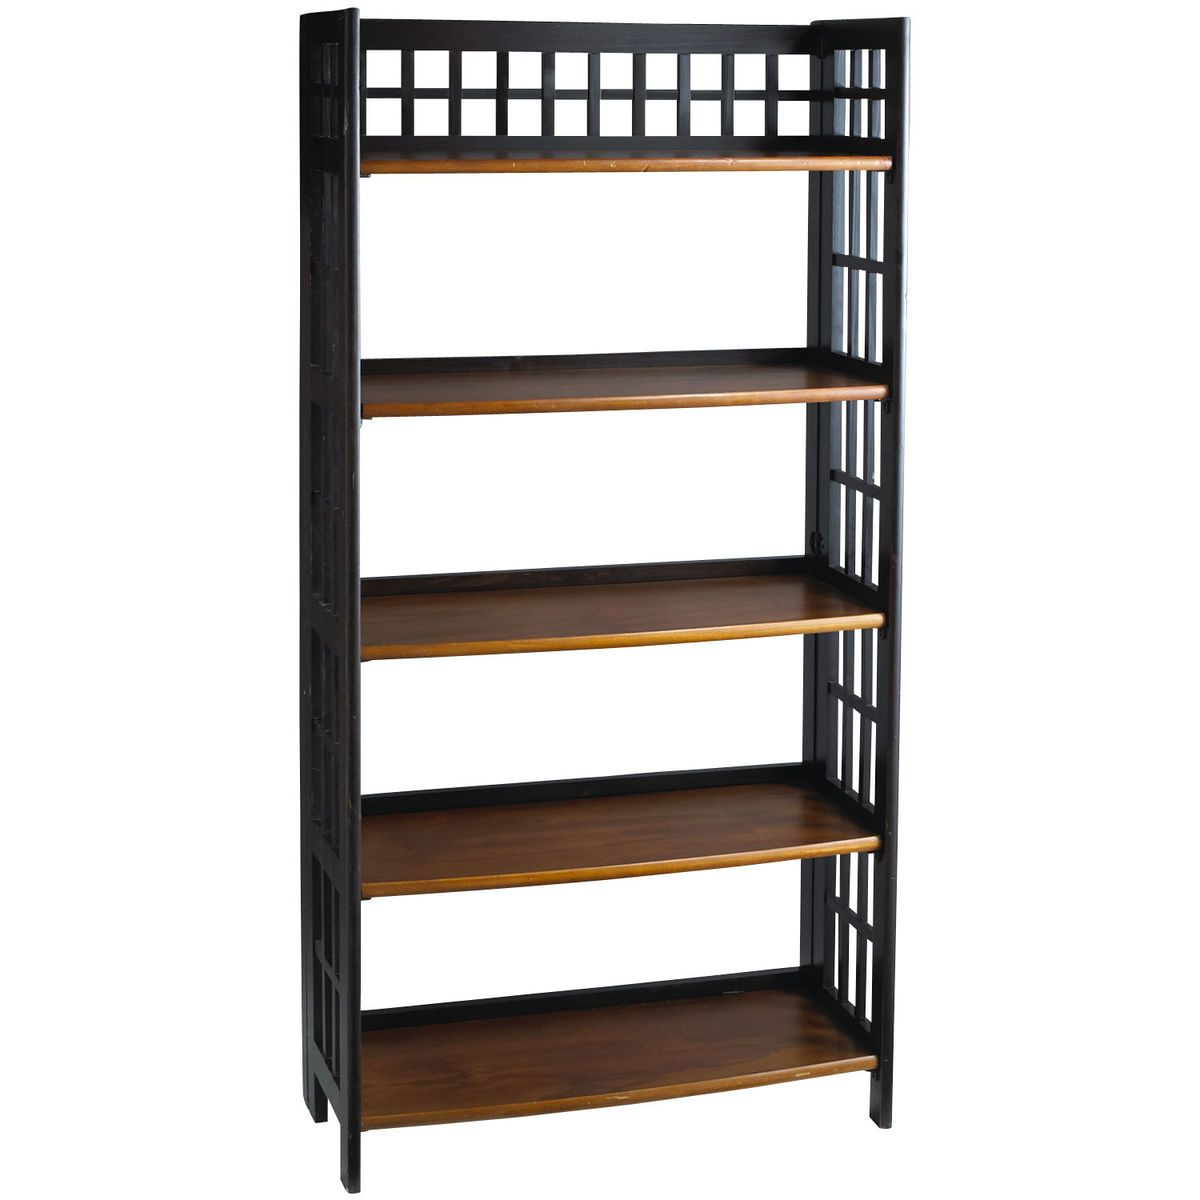 Fretted Tall Folding Shelf - Rubbed Black | Pier 1 Imports ...